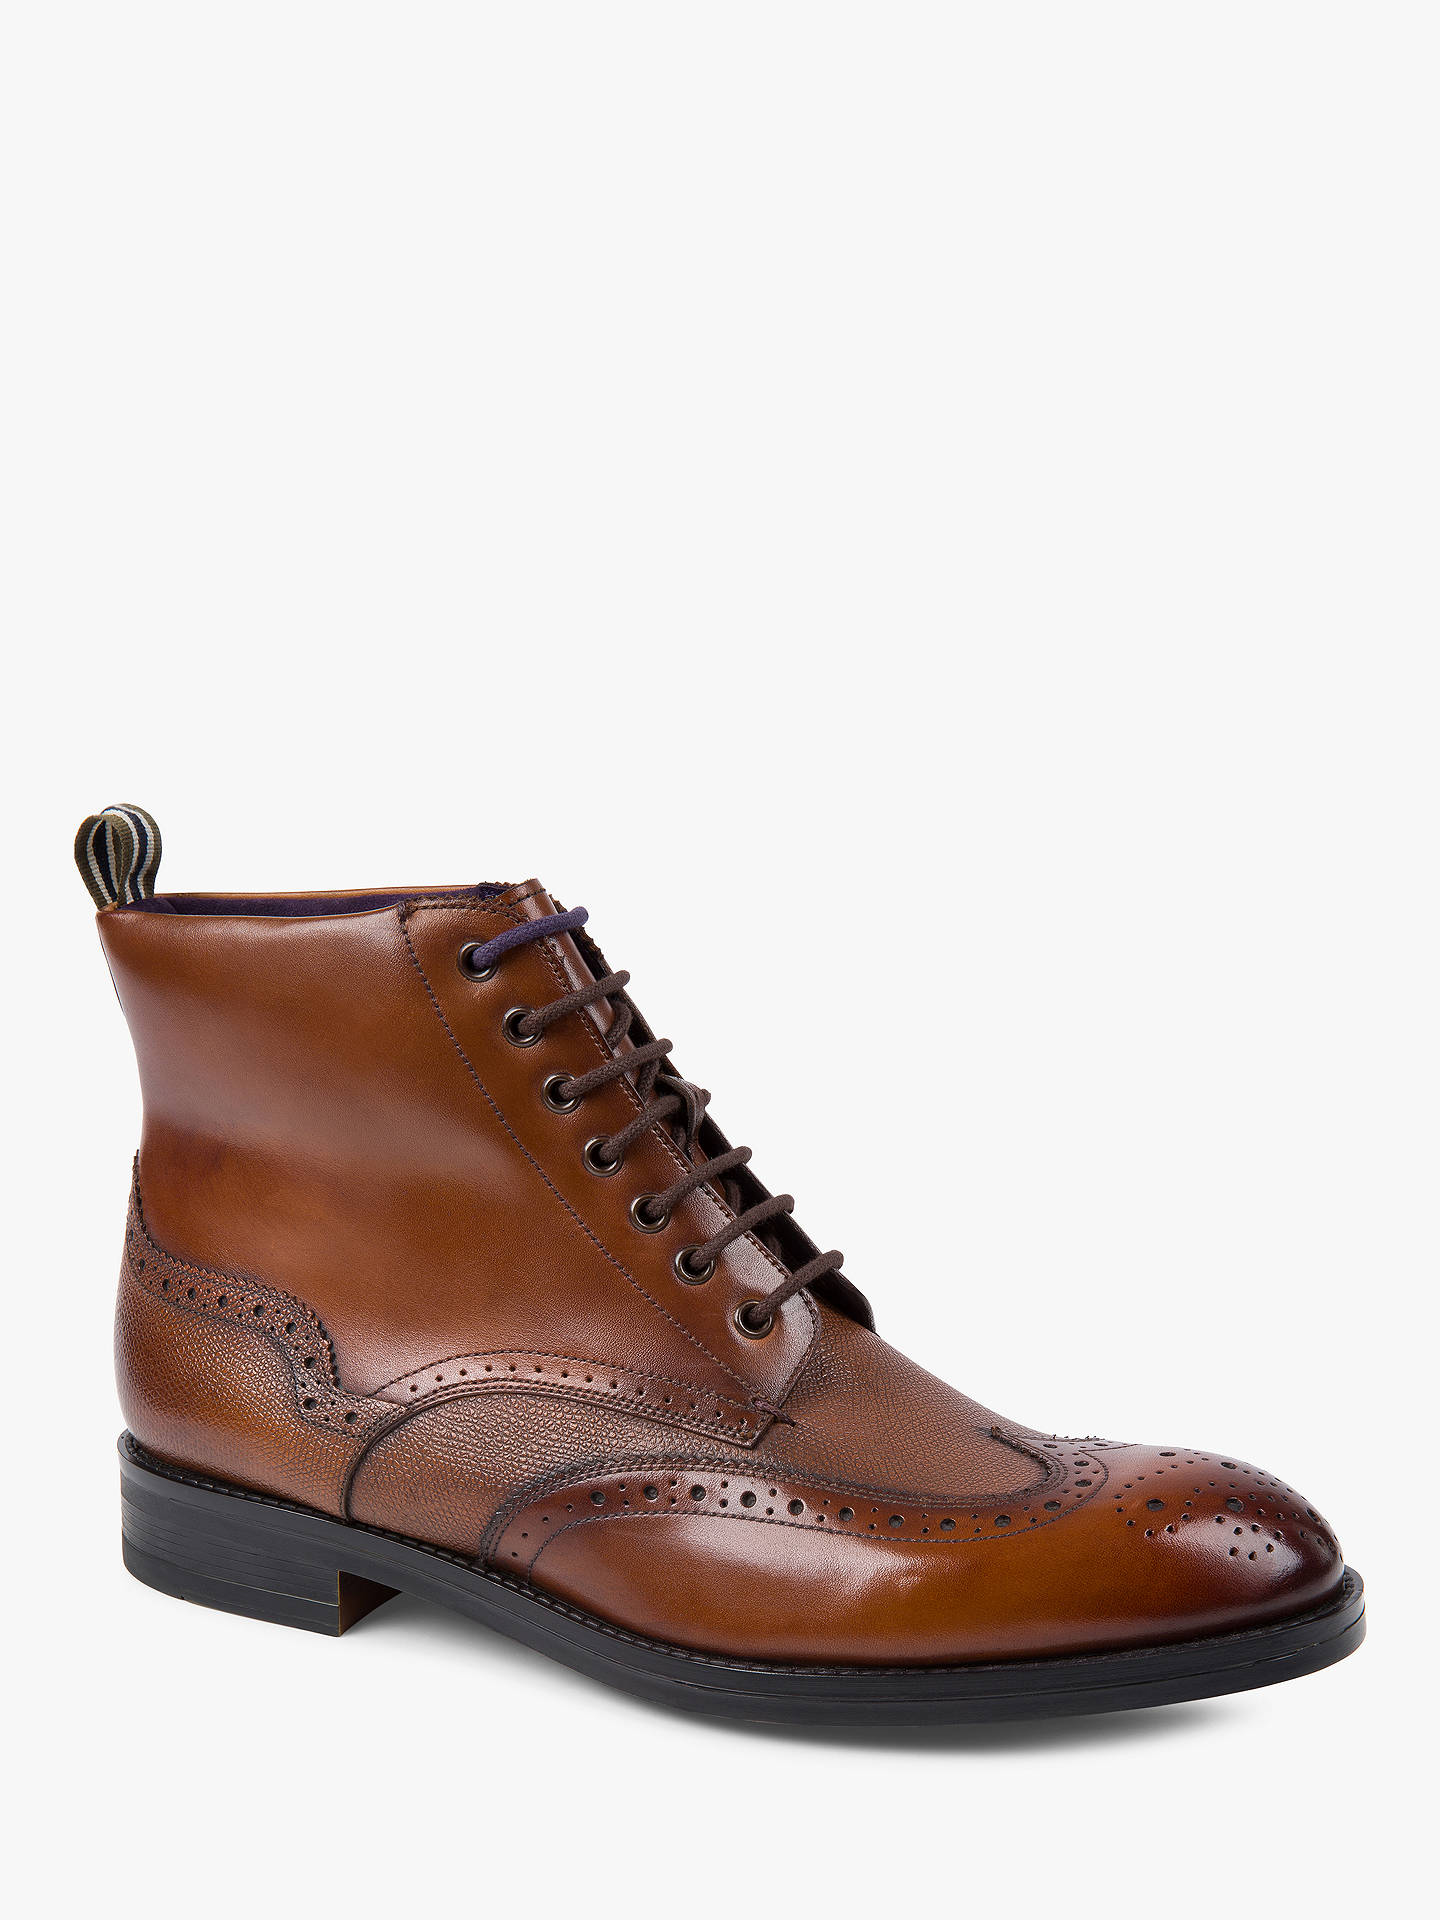 7d483ff73123f Ted Baker Twrens Brogue Boots at John Lewis   Partners